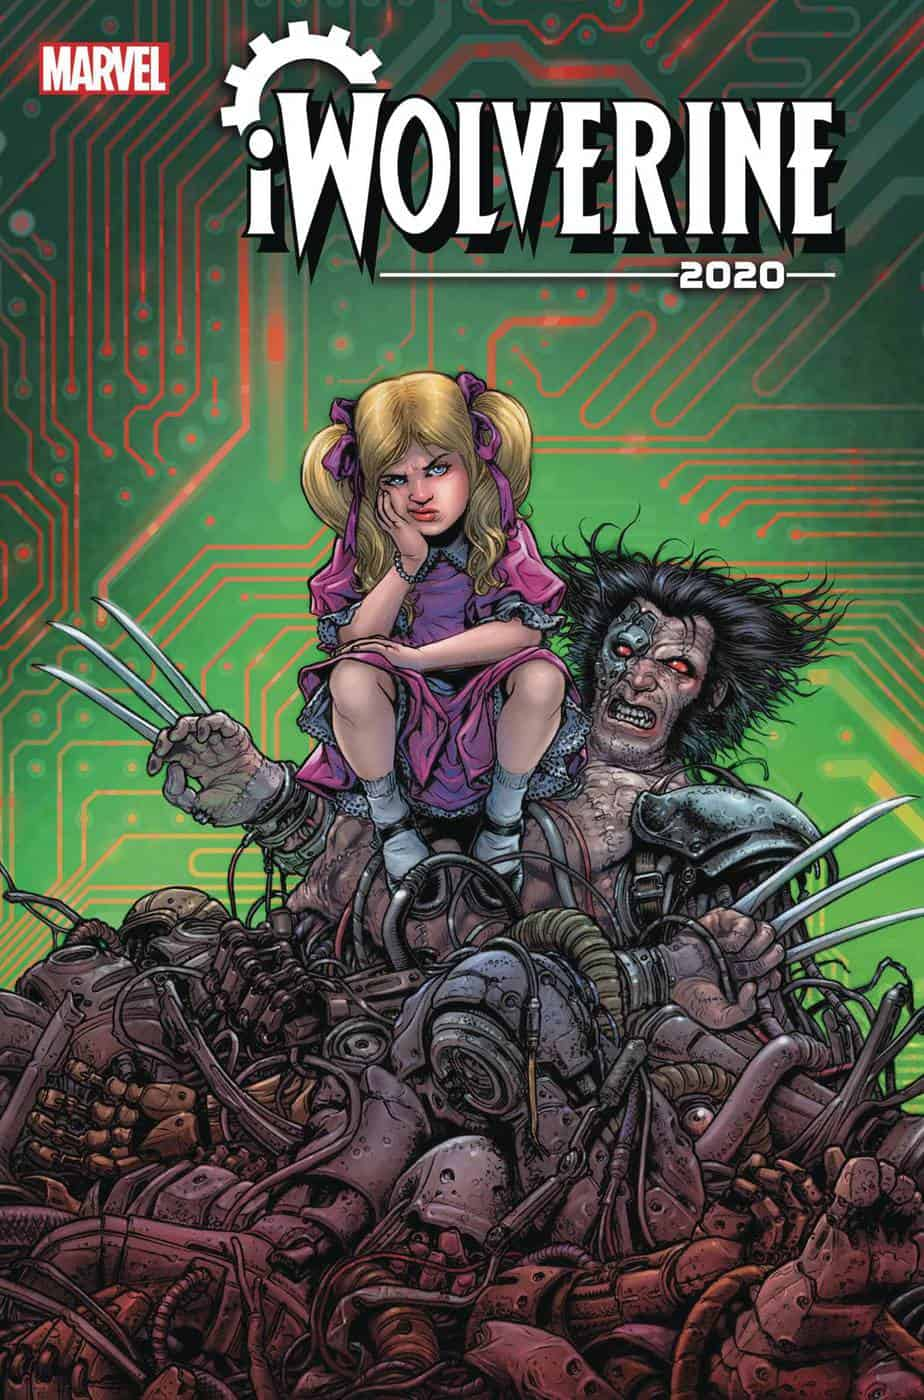 2020 iWOLVERINE #2 - Cover A